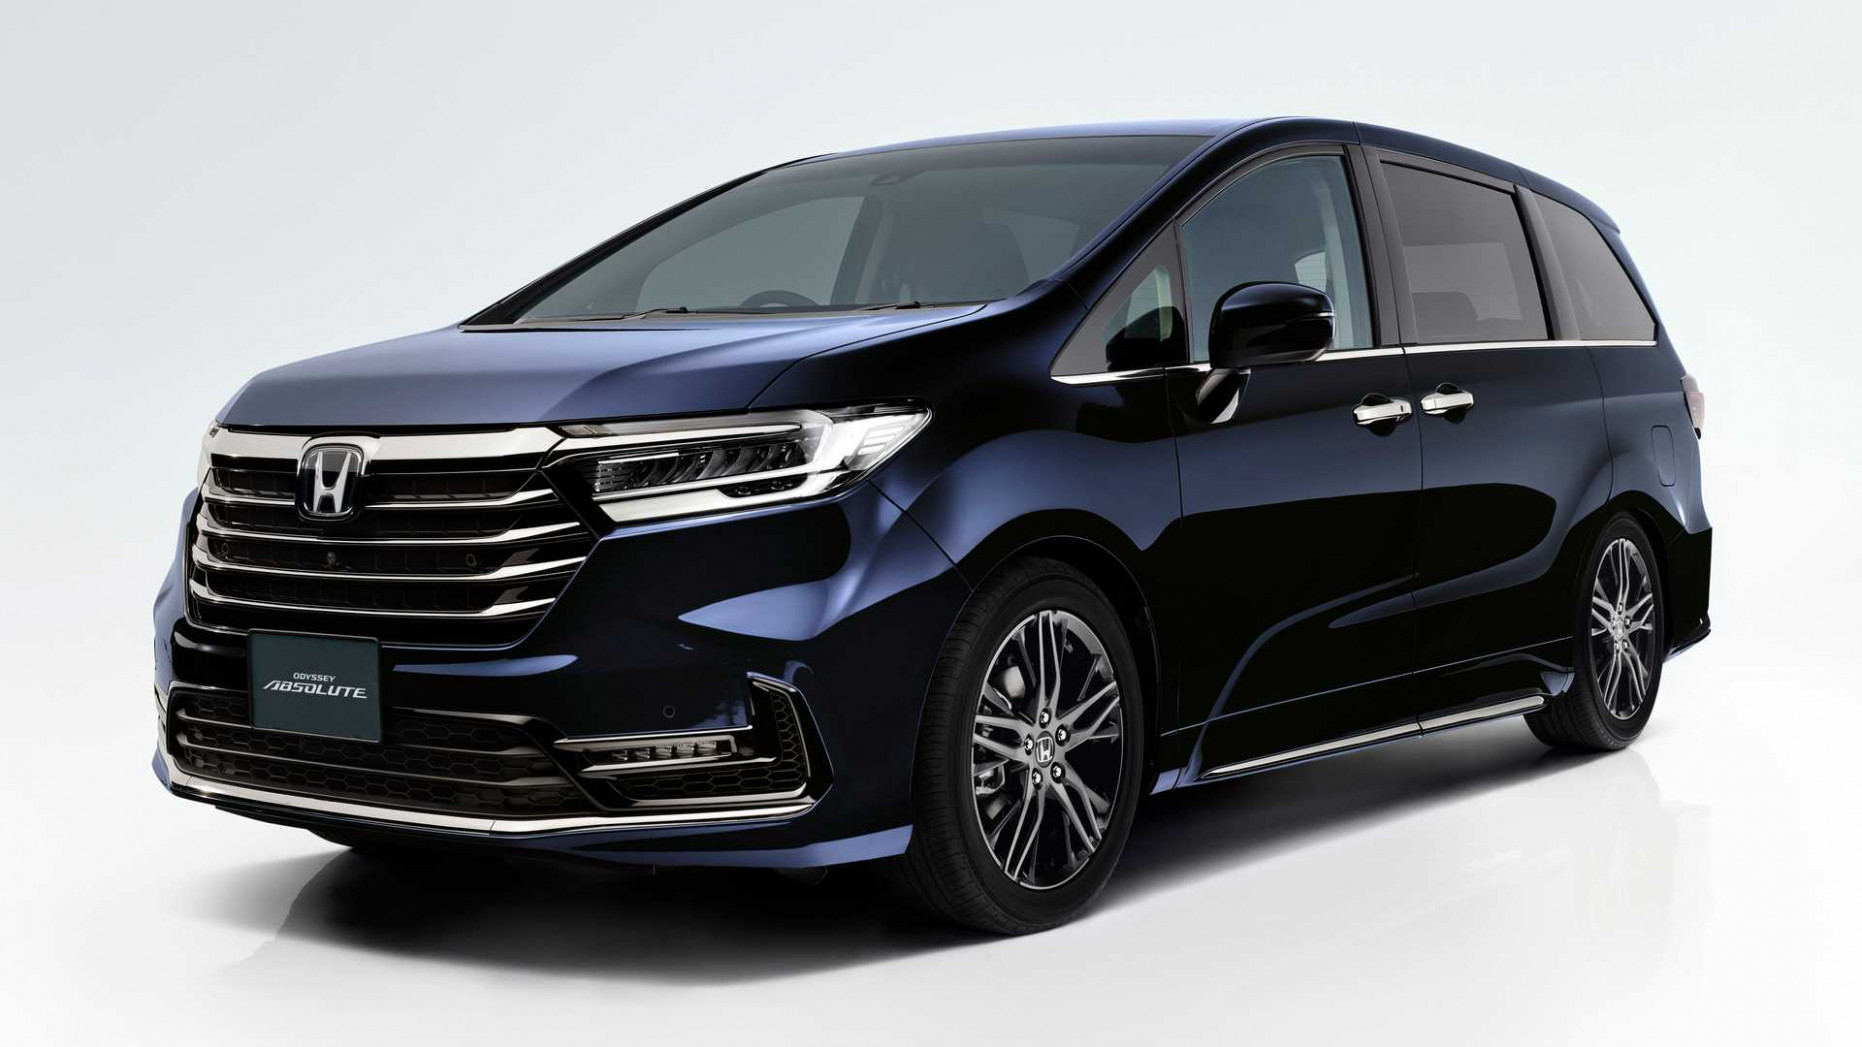 Release When Does 2022 Honda Odyssey Come Out